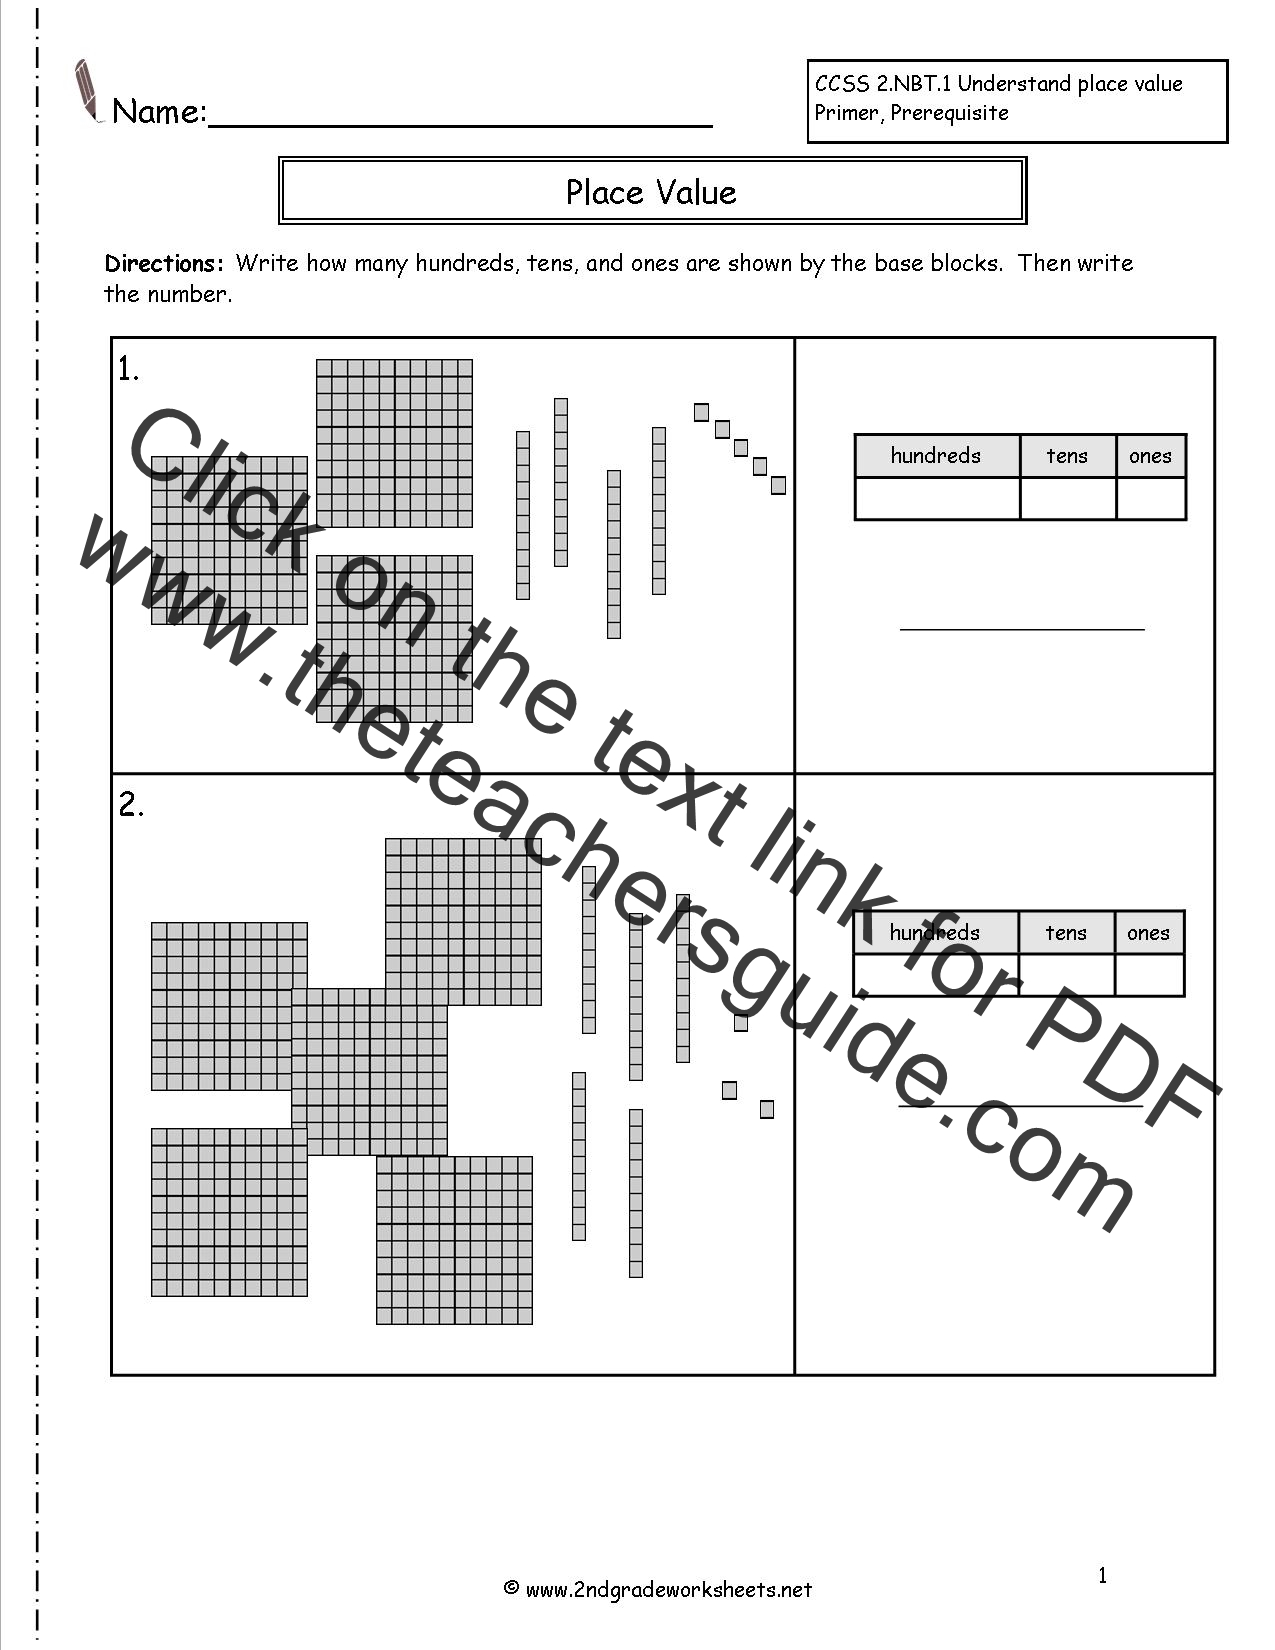 Second Grade Place Value Worksheets – 2nd Grade Math Place Value Worksheets